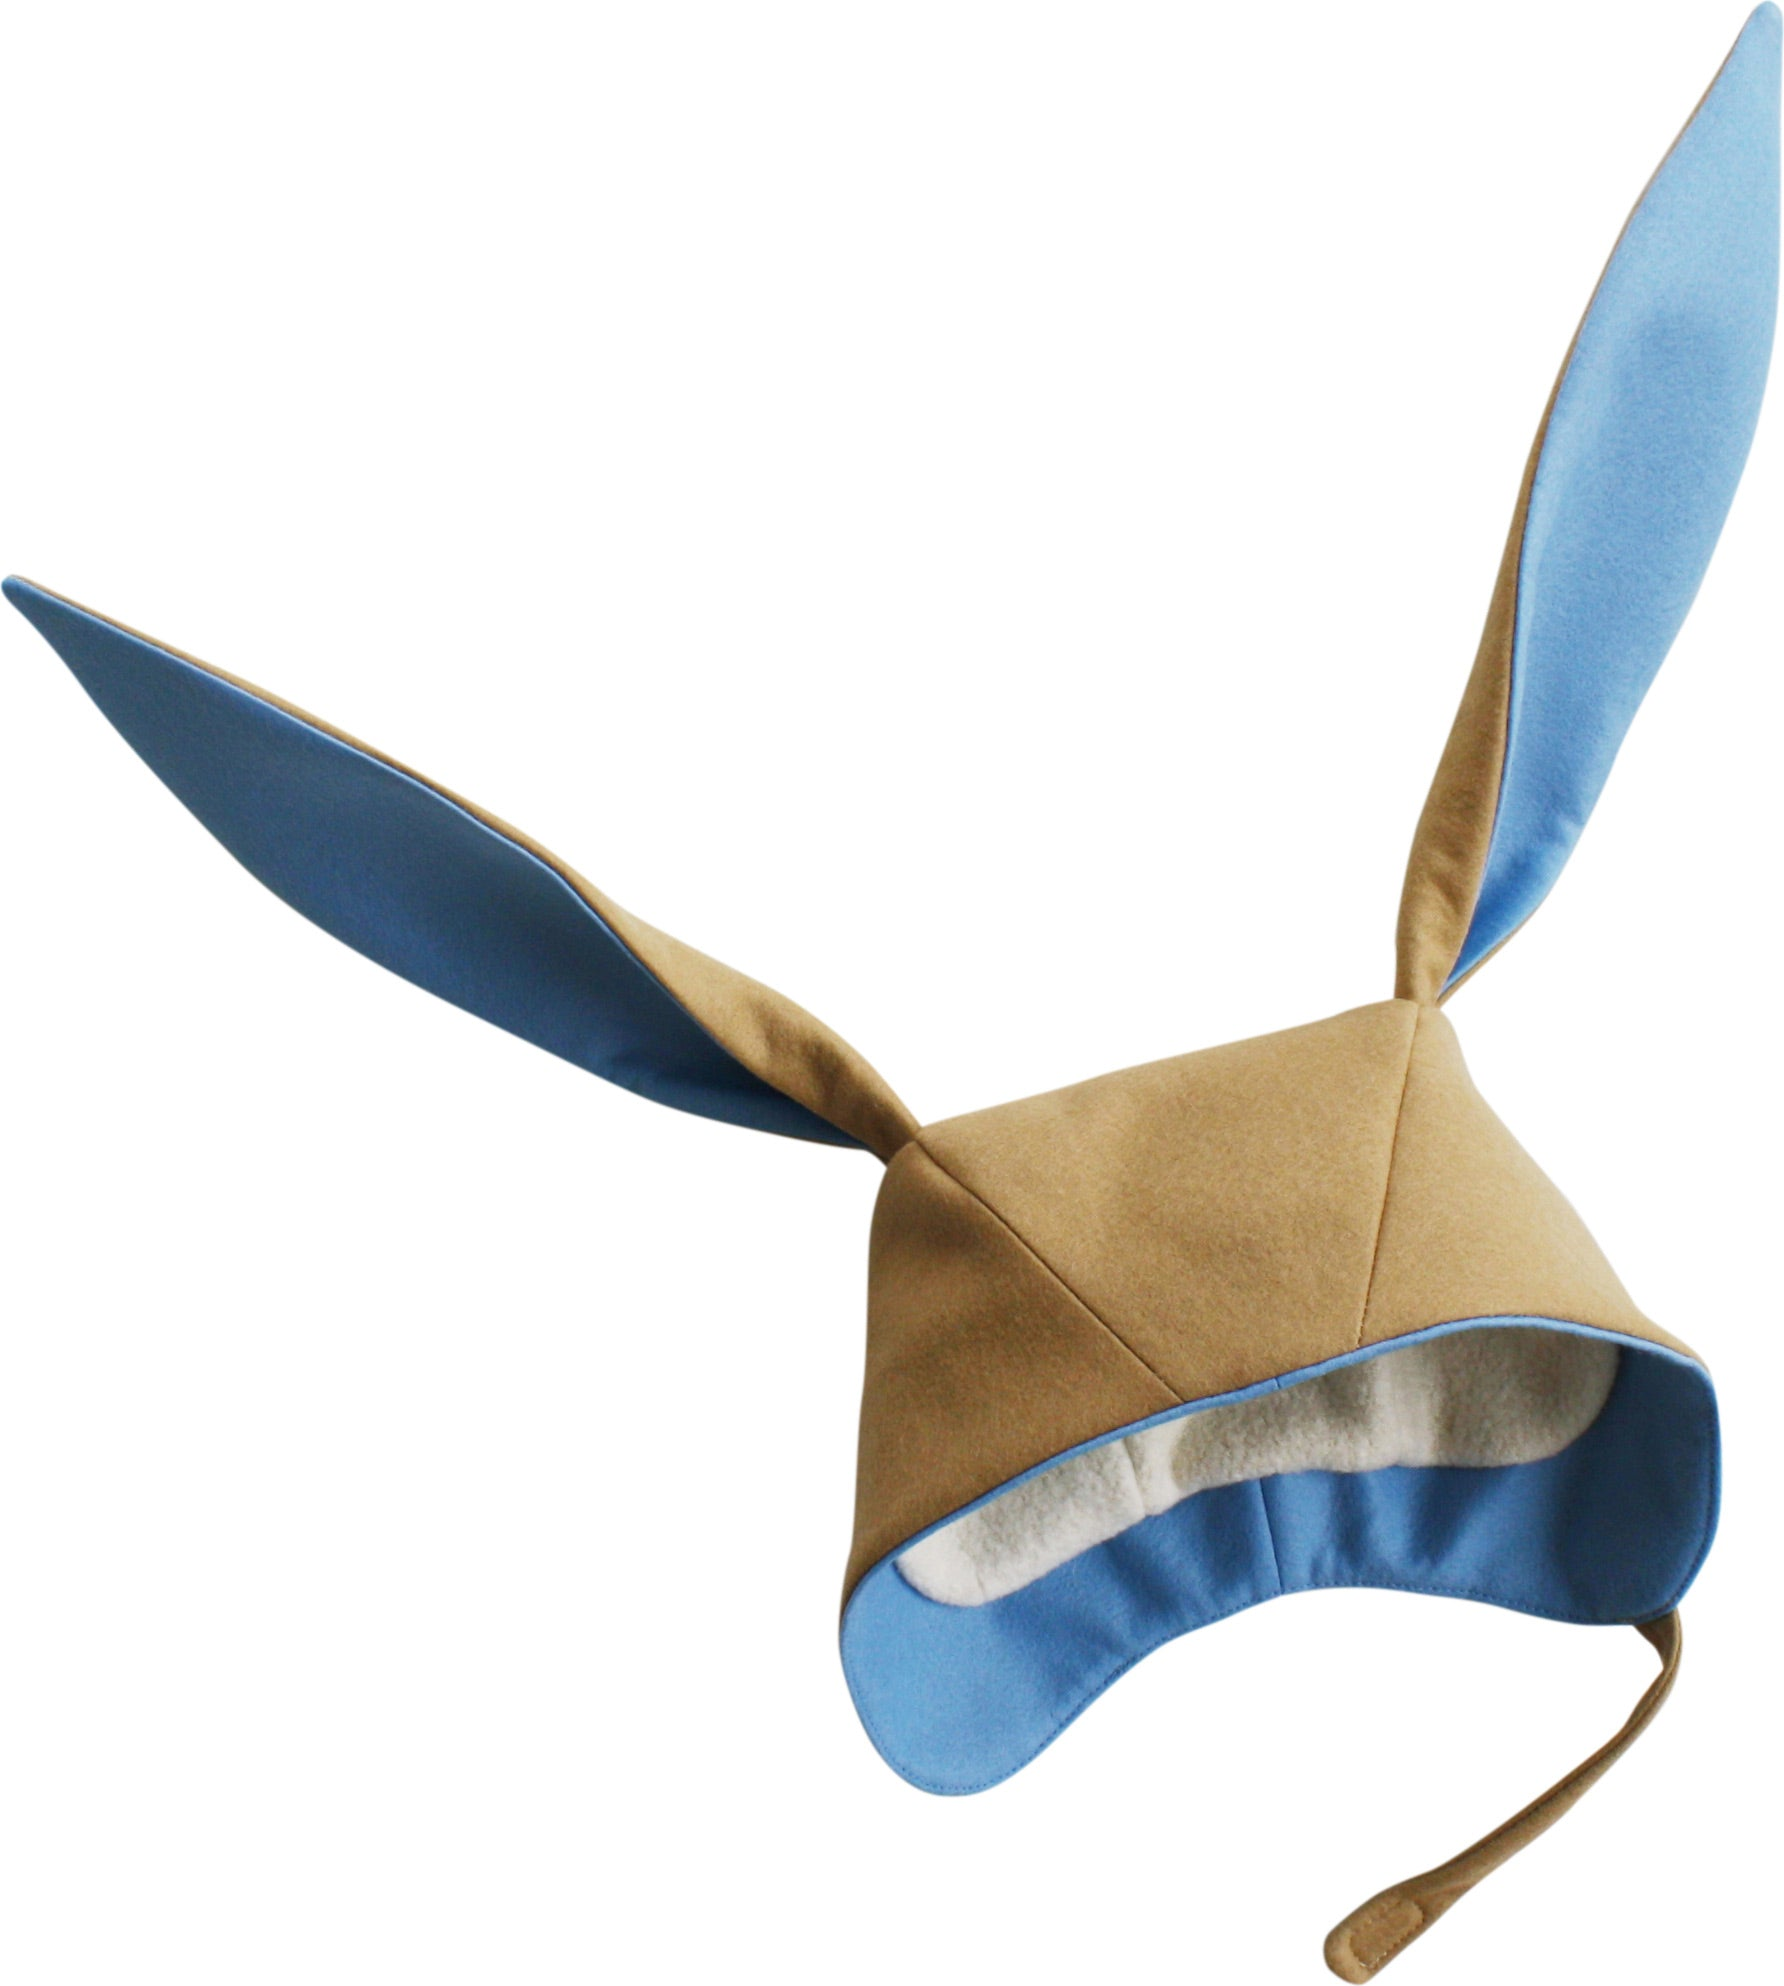 Tan Bunny hat with blue lining in bunny ears and the rim of the hat. The inside is lined with soft white fleece.